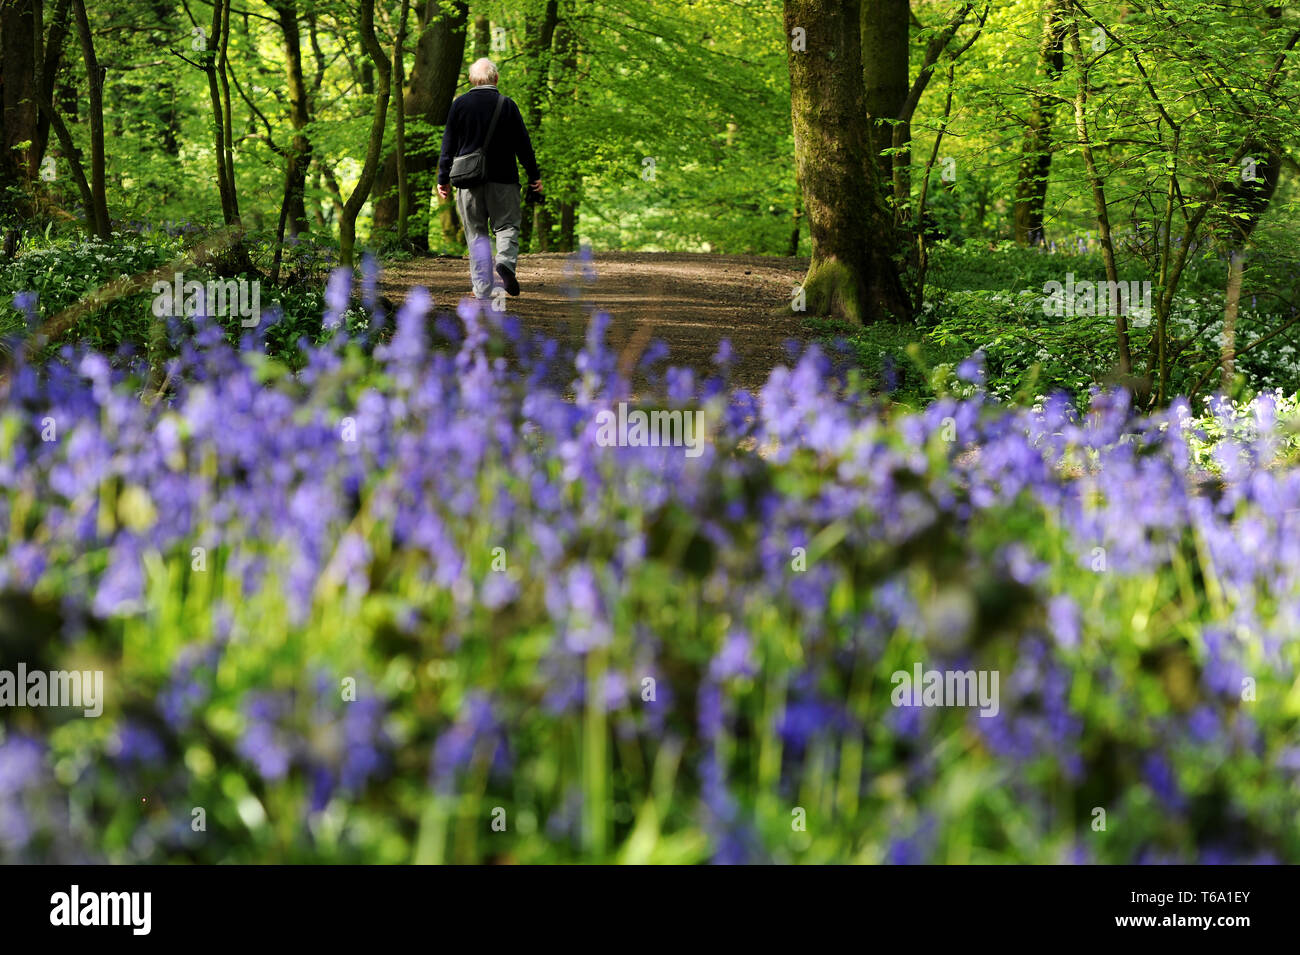 Spring Wood, near Whalley, Lancashire, UK. 30th April, 2019. A glorious display of Bluebells and Wild Garlic for walkers and photographers alike in Spring Wood, near Whalley, Lancashire. The fine weather is set to end as a cold spell marks the start of the new month tomorrow. Picture by Credit: Paul Heyes/Alamy Live News - Stock Image